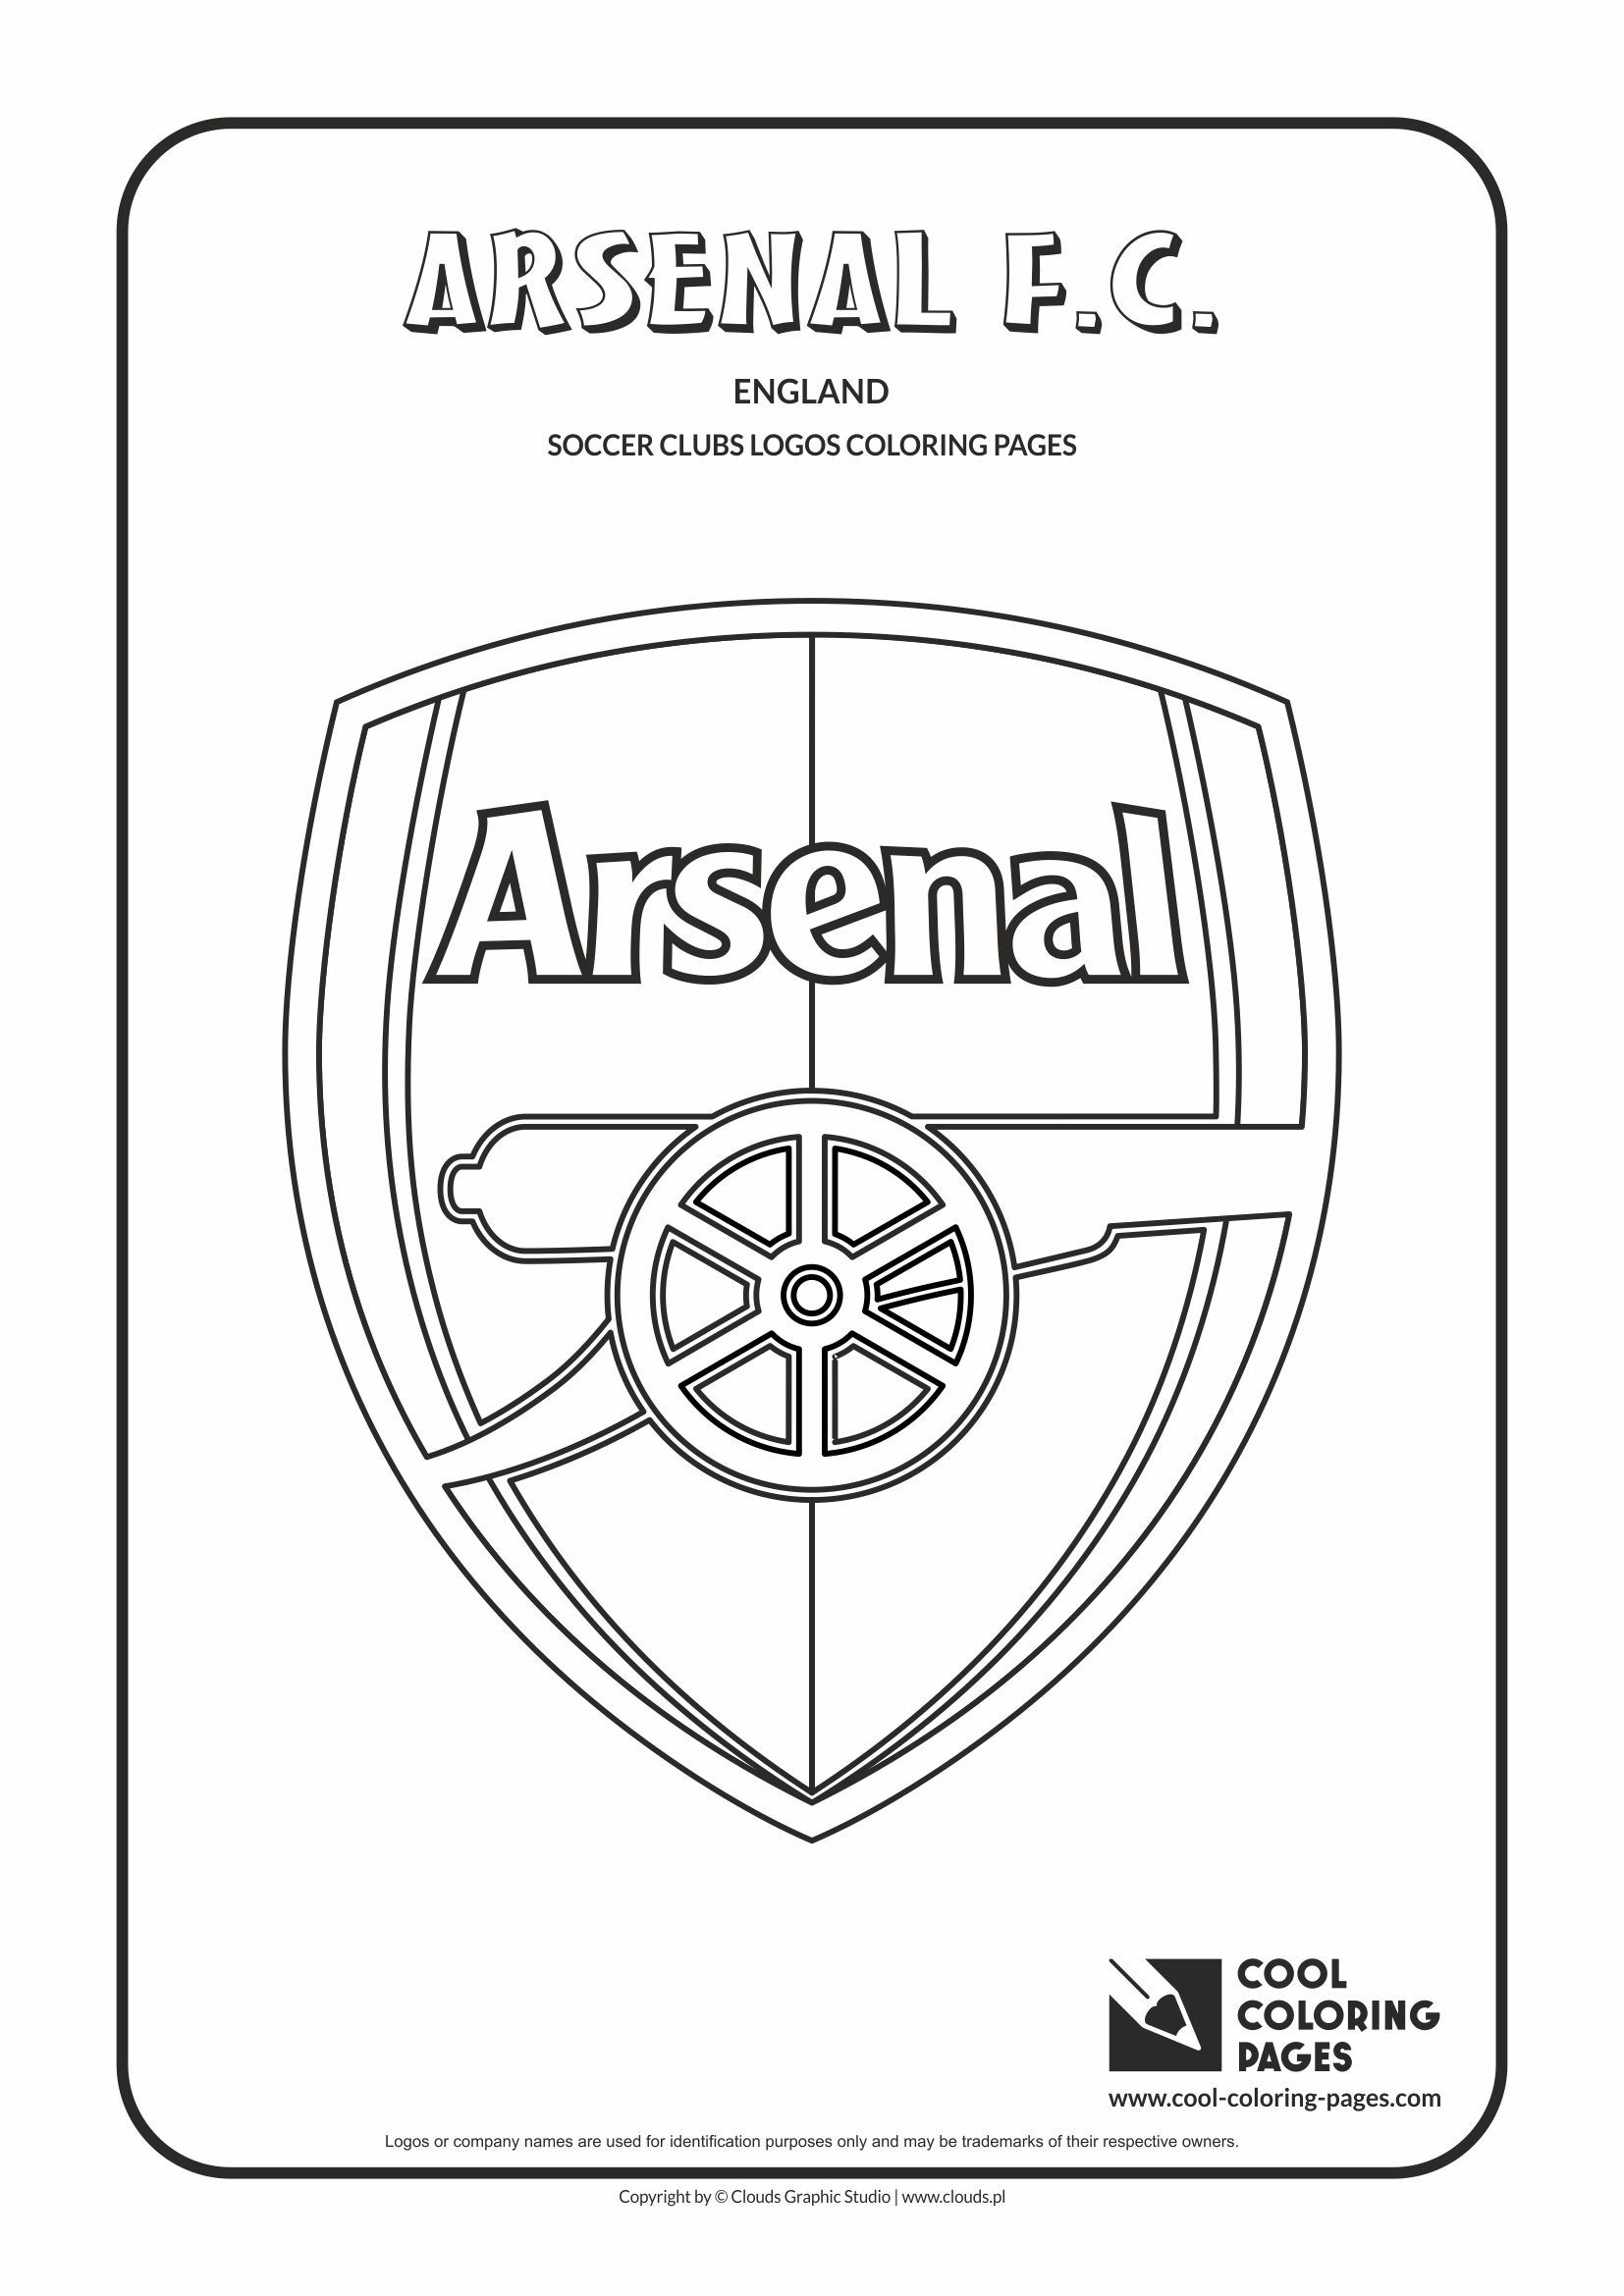 Cool Coloring Pages Arsenal FC